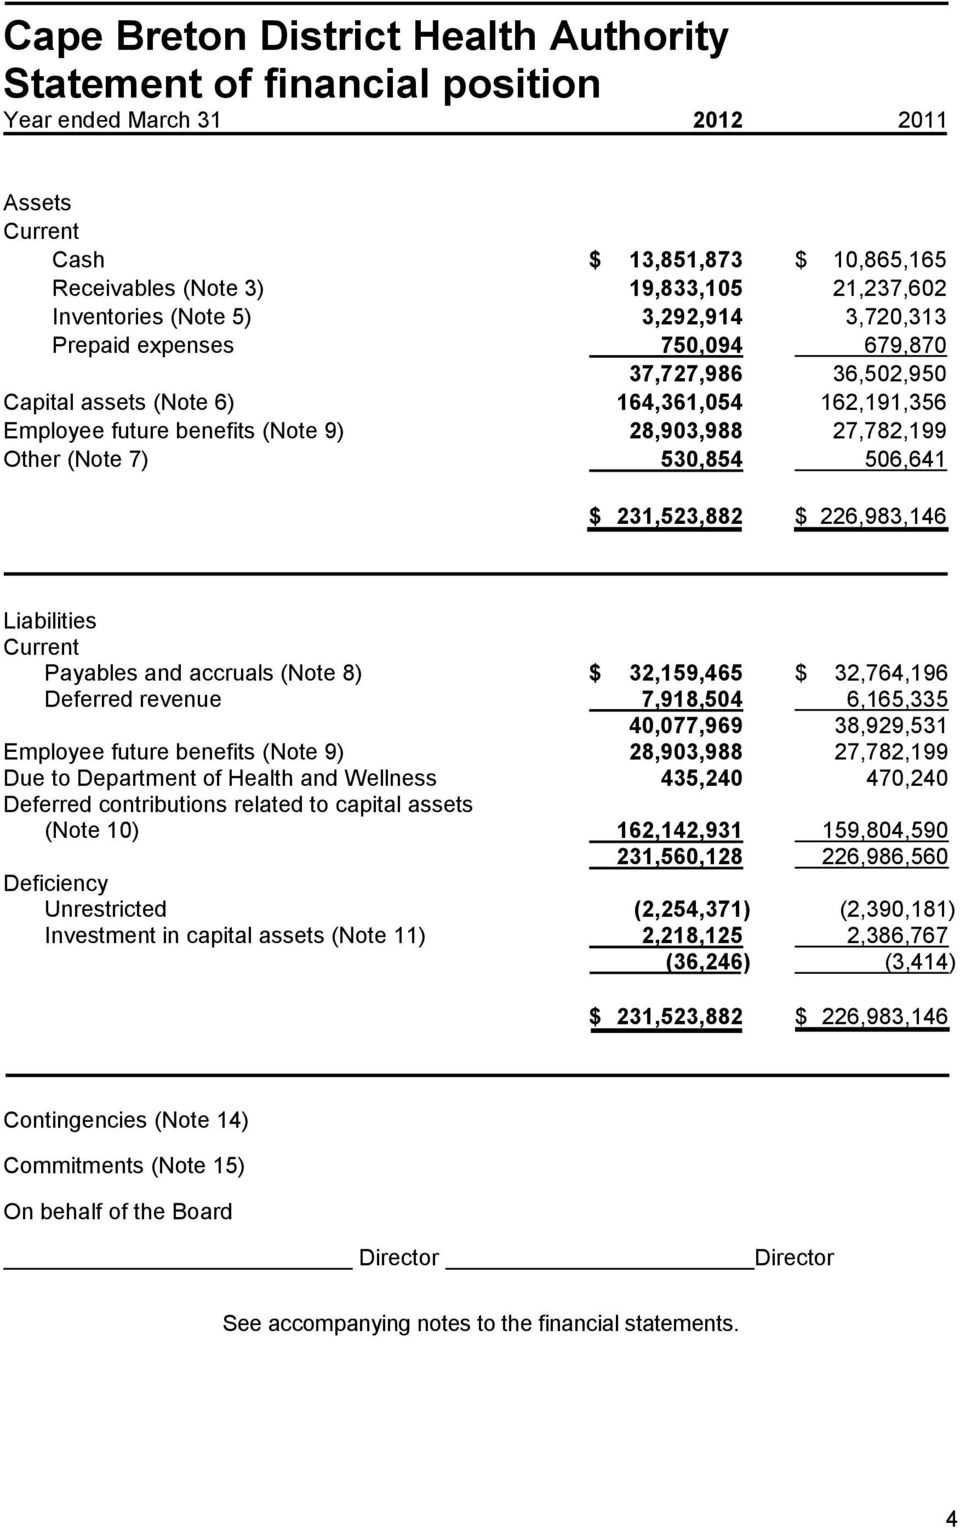 226,983,146 Liabilities Current Payables and accruals (Note 8) $ 32,159,465 $ 32,764,196 Deferred revenue 7,918,504 6,165,335 40,077,969 38,929,531 Employee future benefits (Note 9) 28,903,988